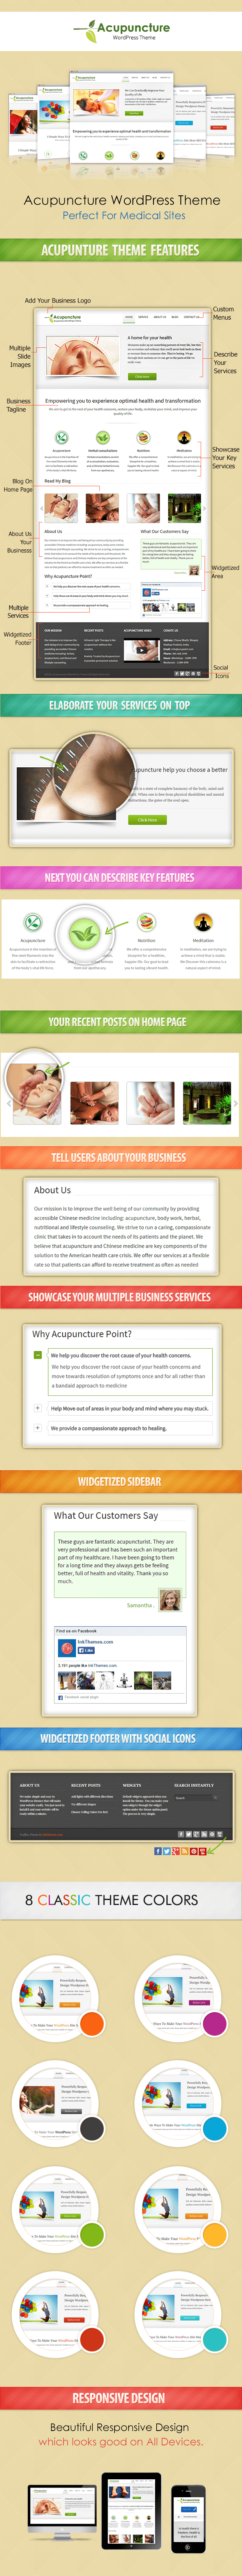 acupuncture wp sales page